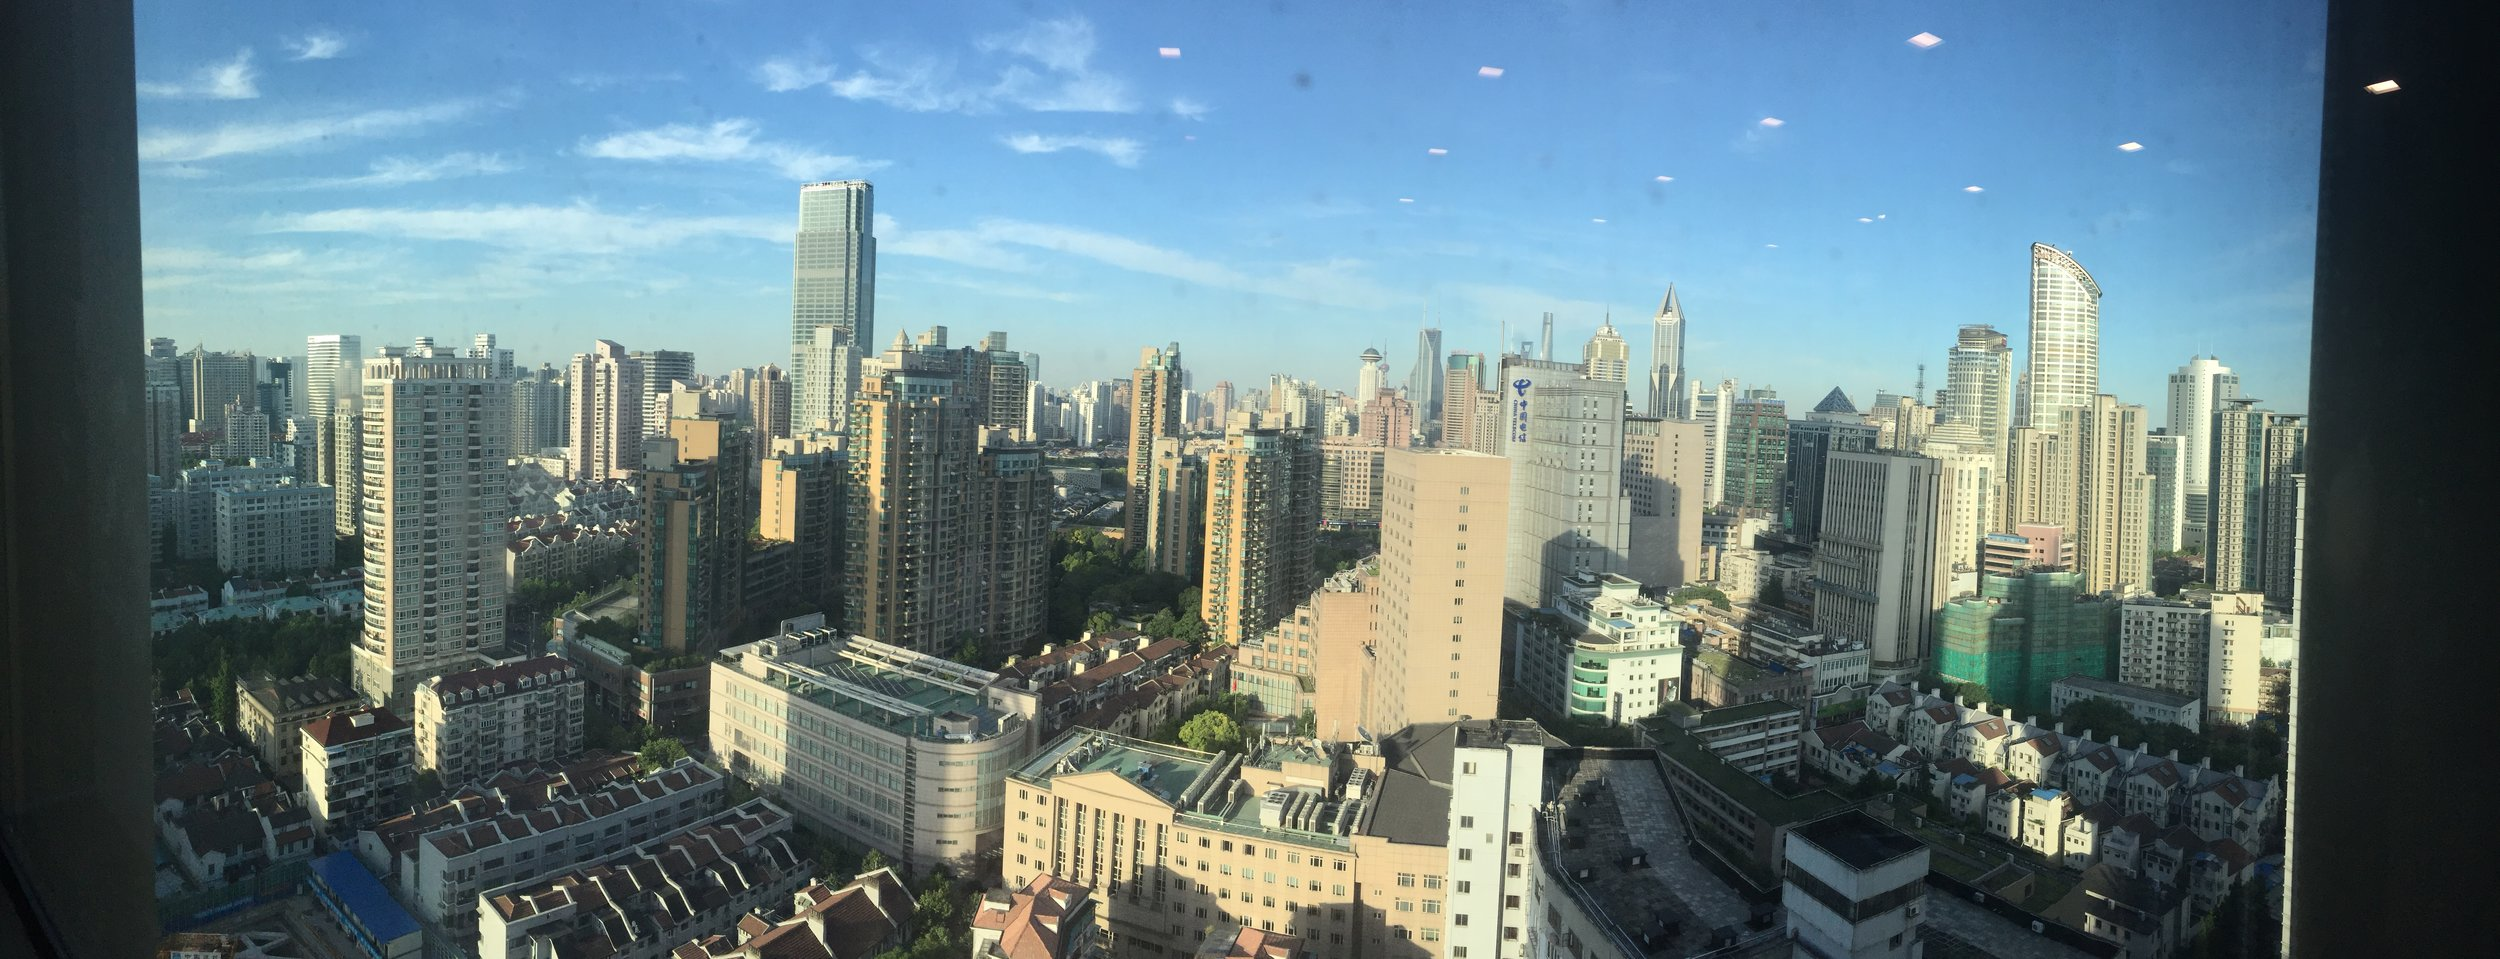 View from lawyer's offices in Shanghai